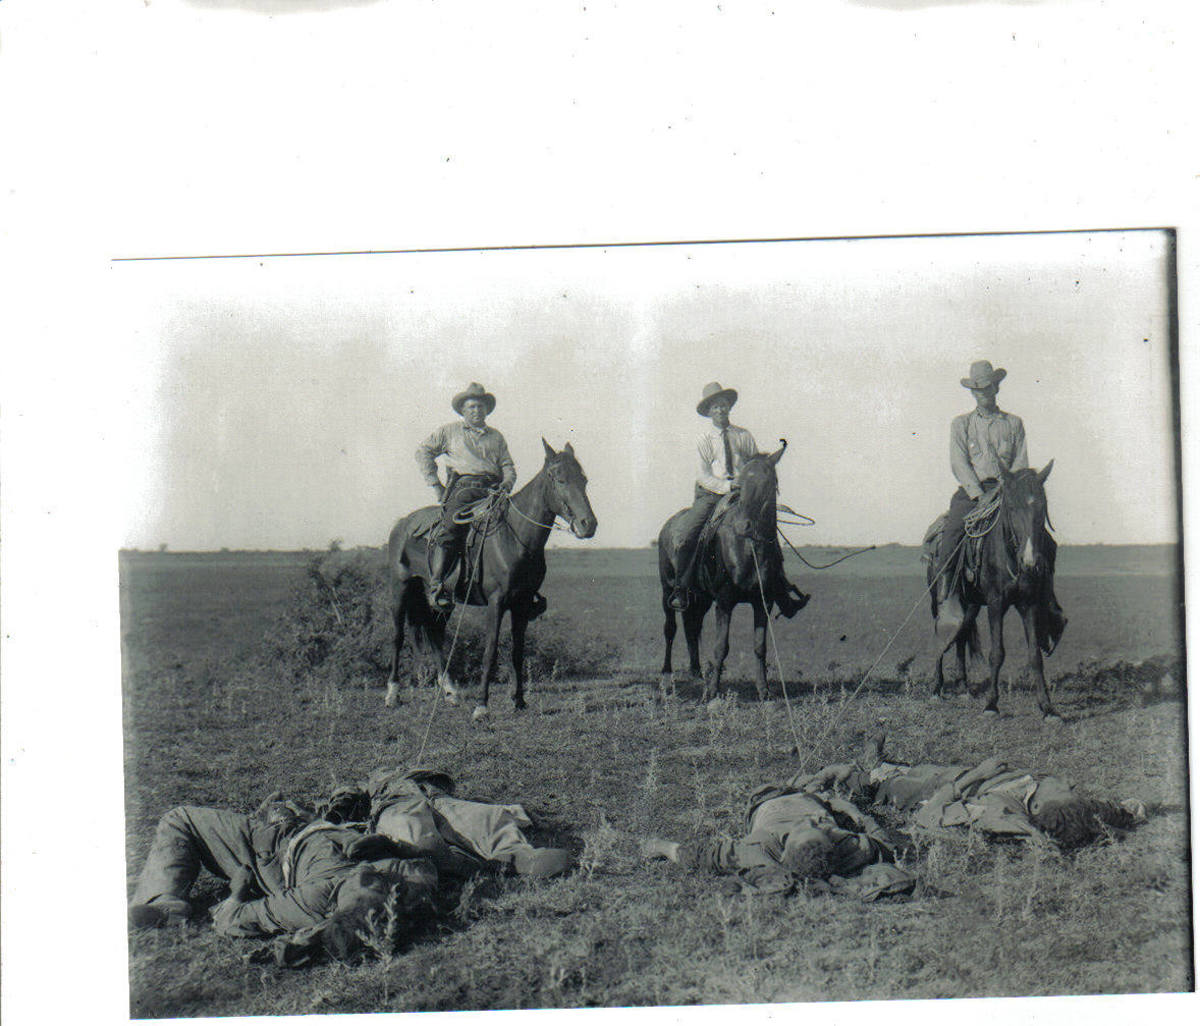 Texas Ranger dragging in Outlaws by rope.